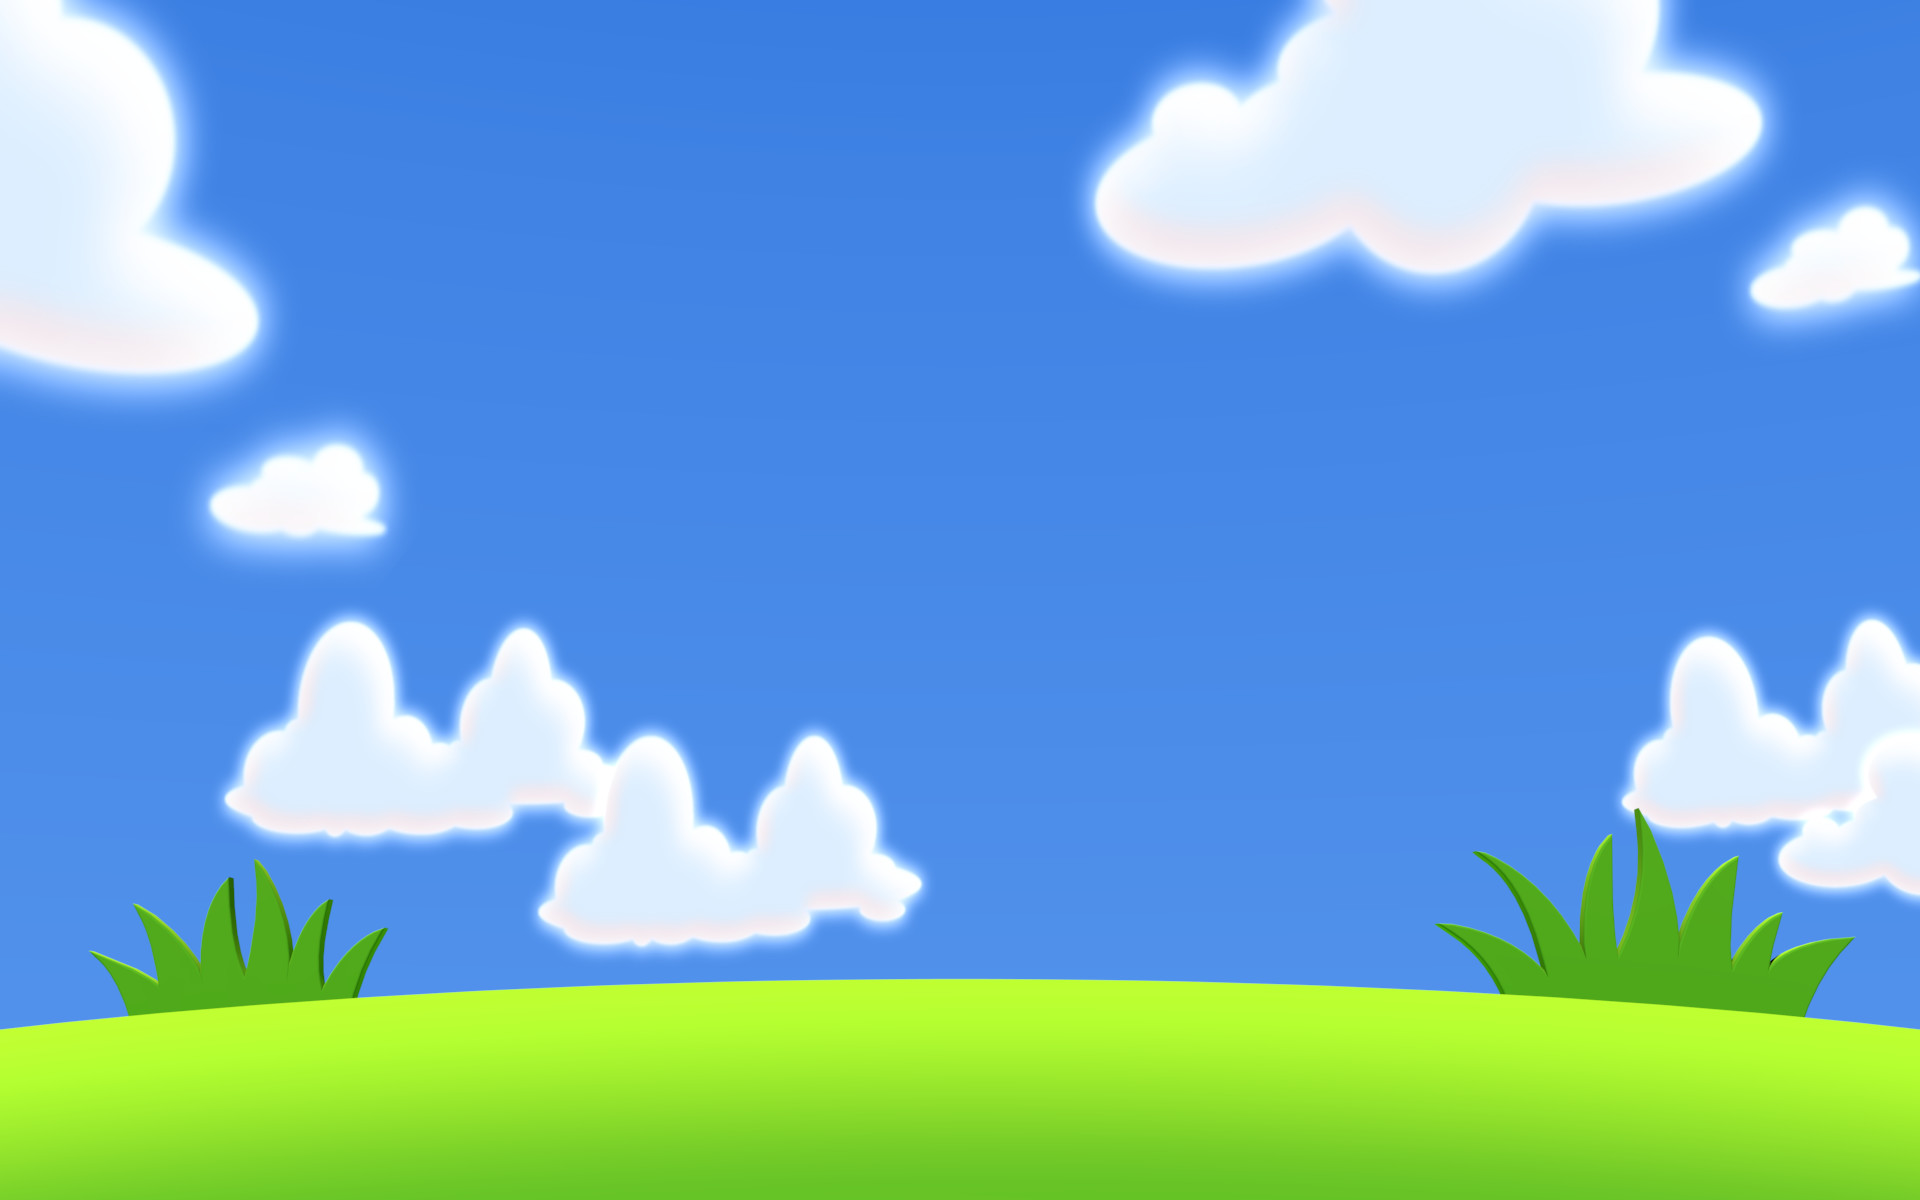 Background clipart. Incep imagine ex co